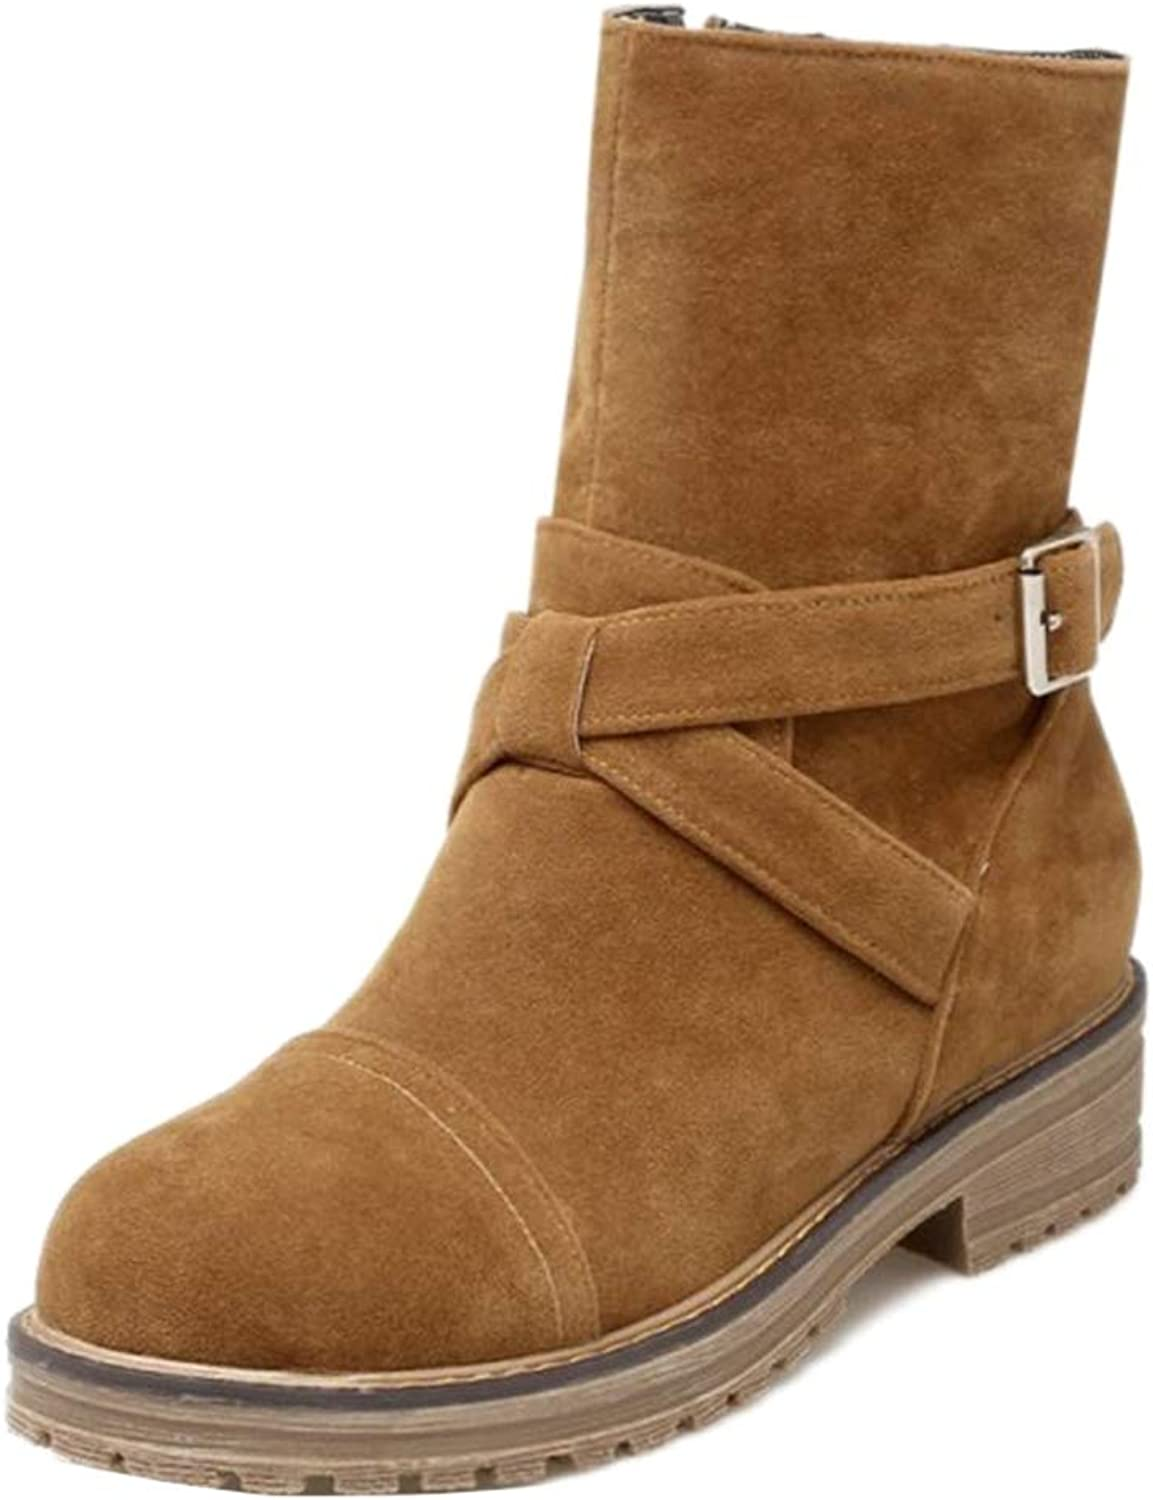 Hoxekle Women Velvet Mid-Calf Flat Boots with Round Toe Zip Short Plush Snow Boots Autumn Fashion Casual shoes